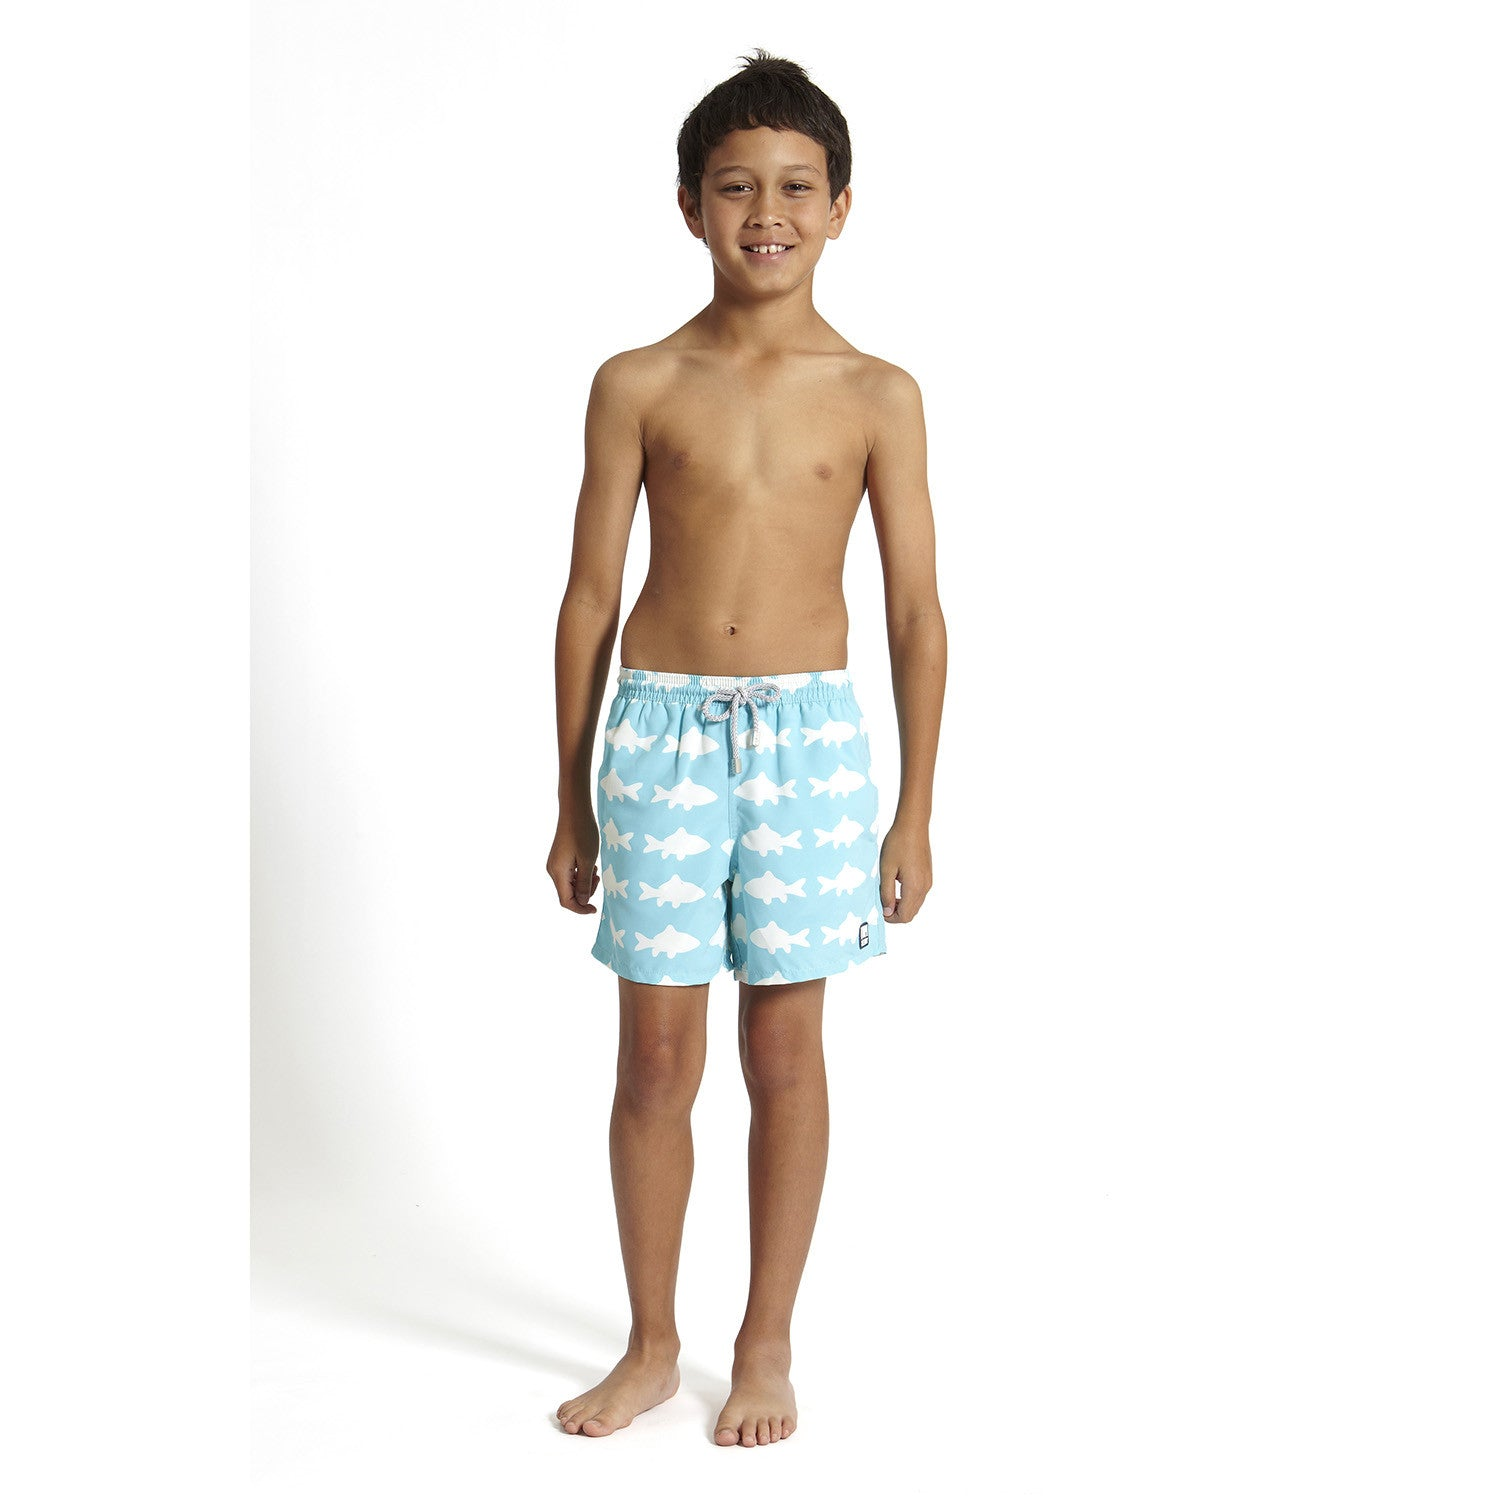 For a more casual athletic option, try a pair of boardshorts in a slightly longer length than standard trunks. No matter the style, boys' swimwear from Kmart features quality materials and designs. Built-in mesh briefs add an extra layer of comfort while secure pockets hold goggles and other gear. Dive into summer with new boys' swimwear.